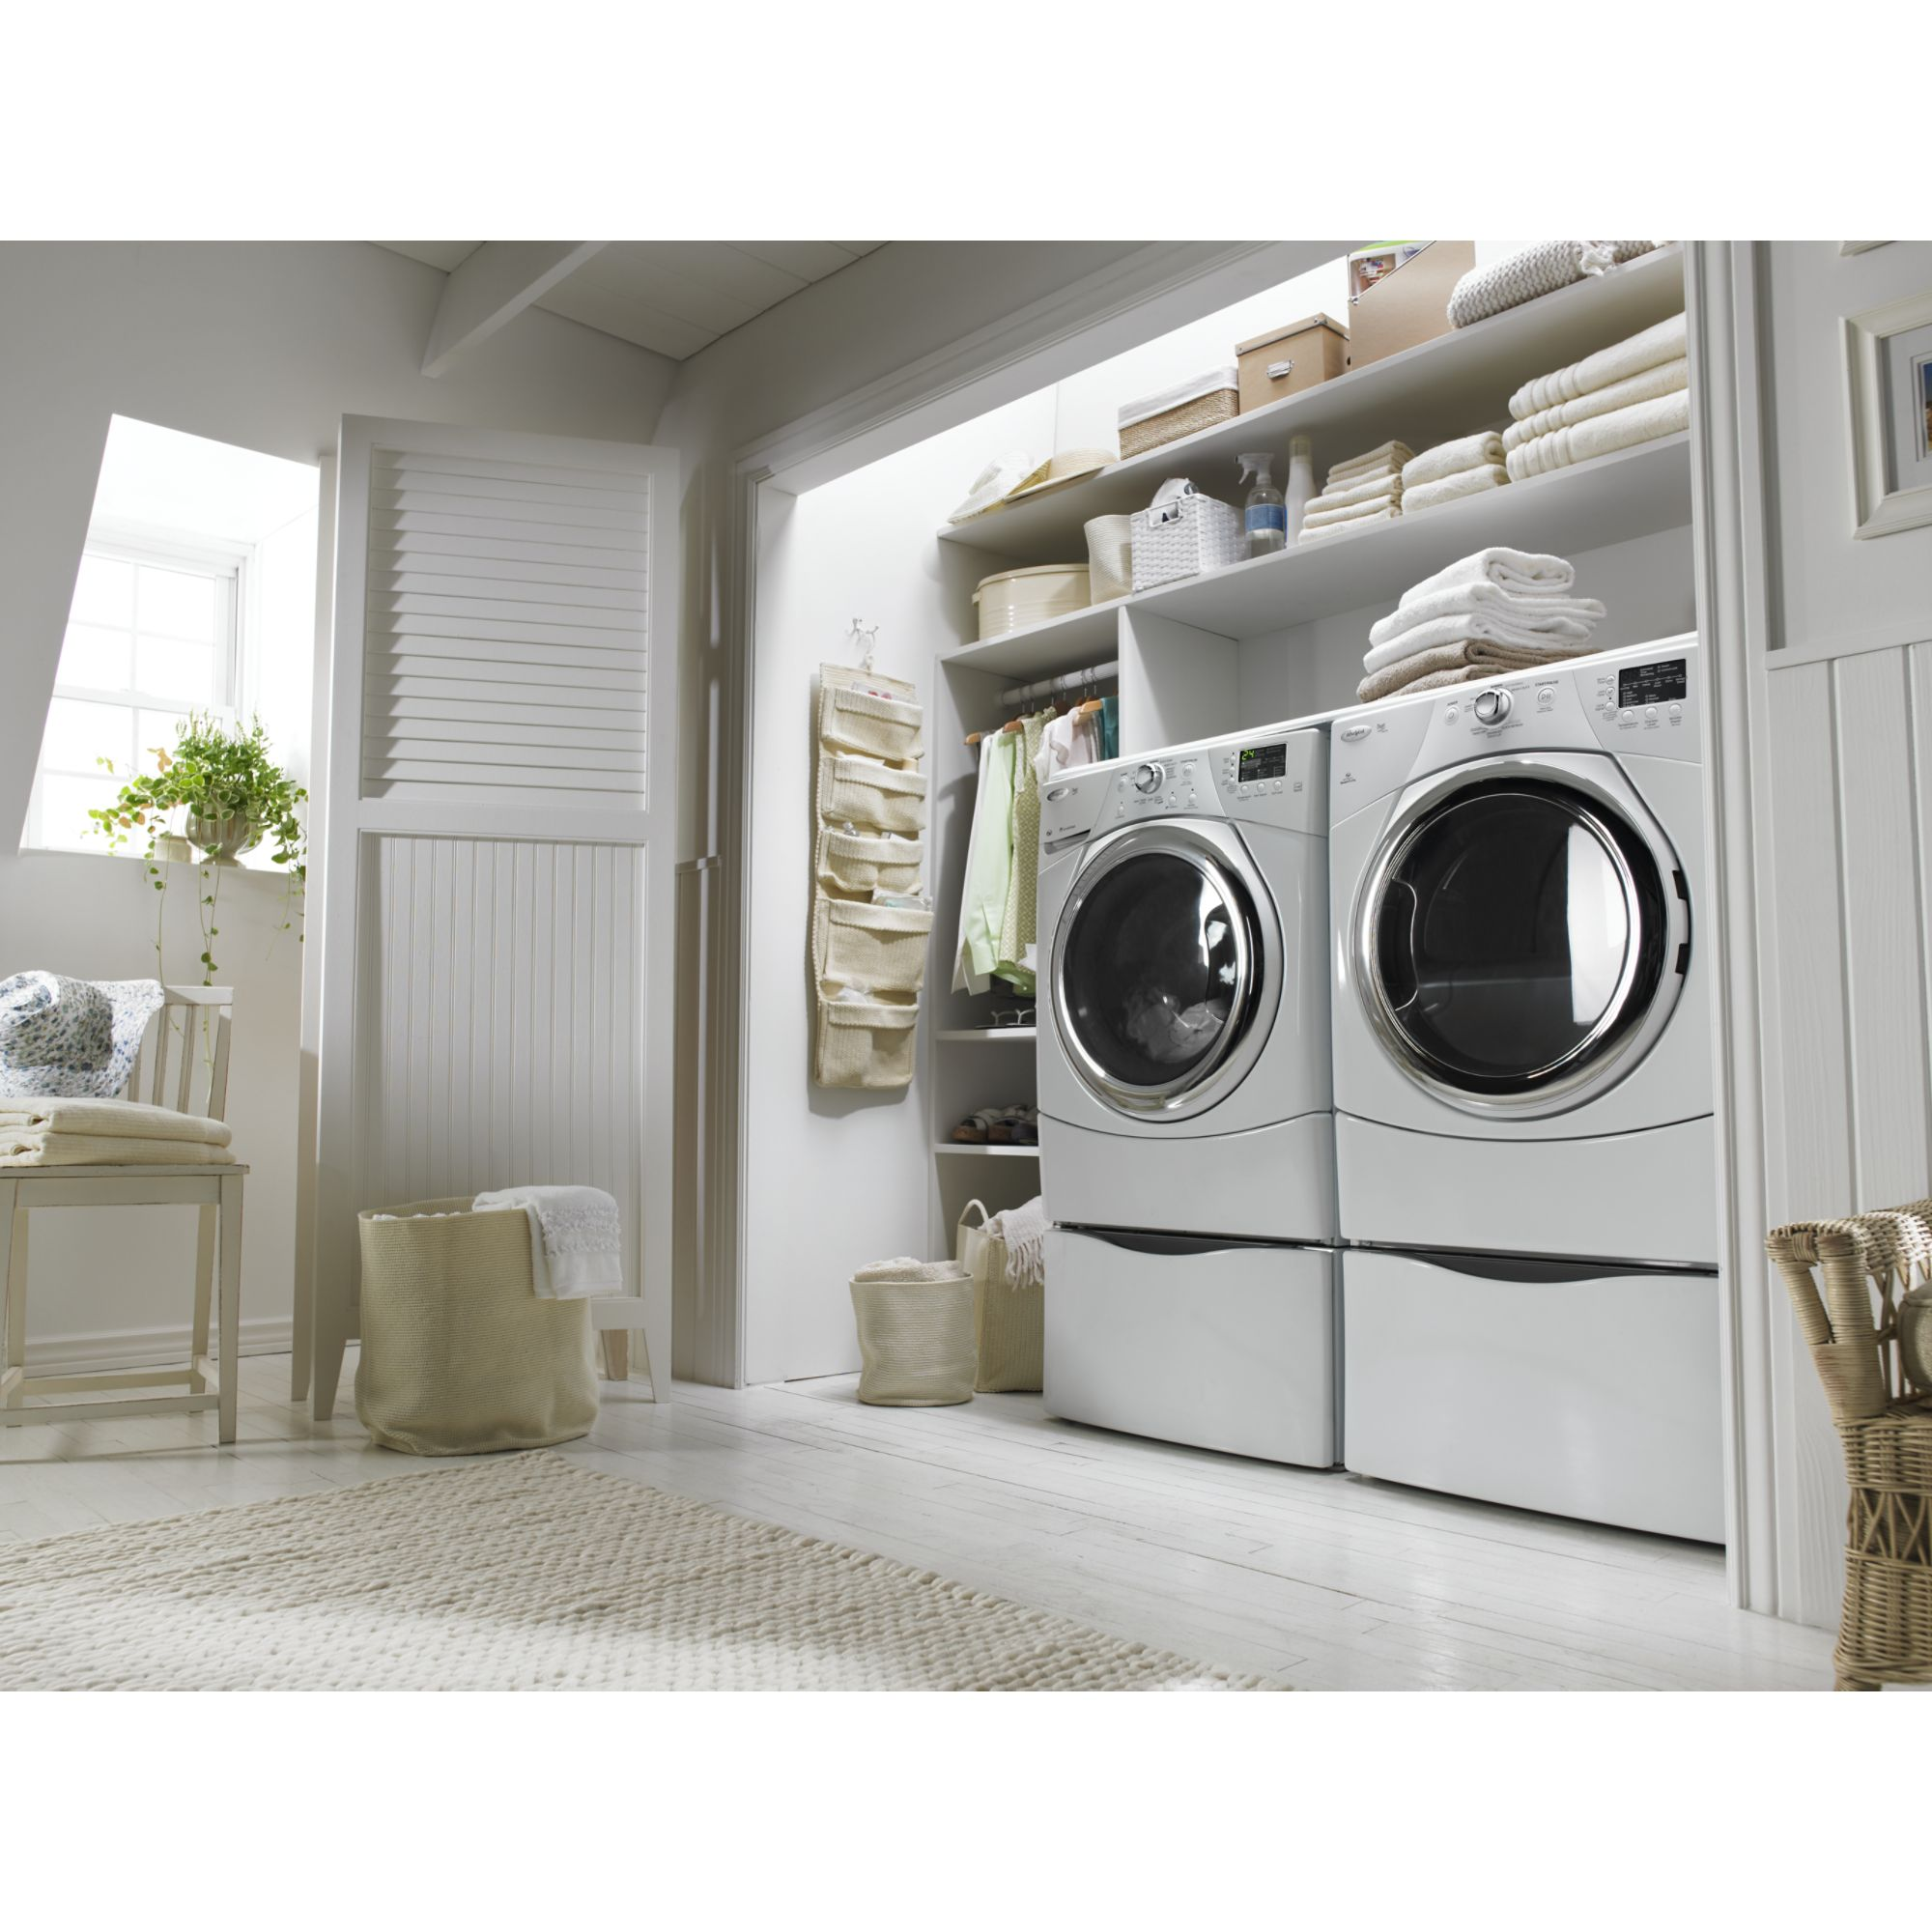 Whirlpool 6.7 cu. ft. Steam Gas Dryer  - White